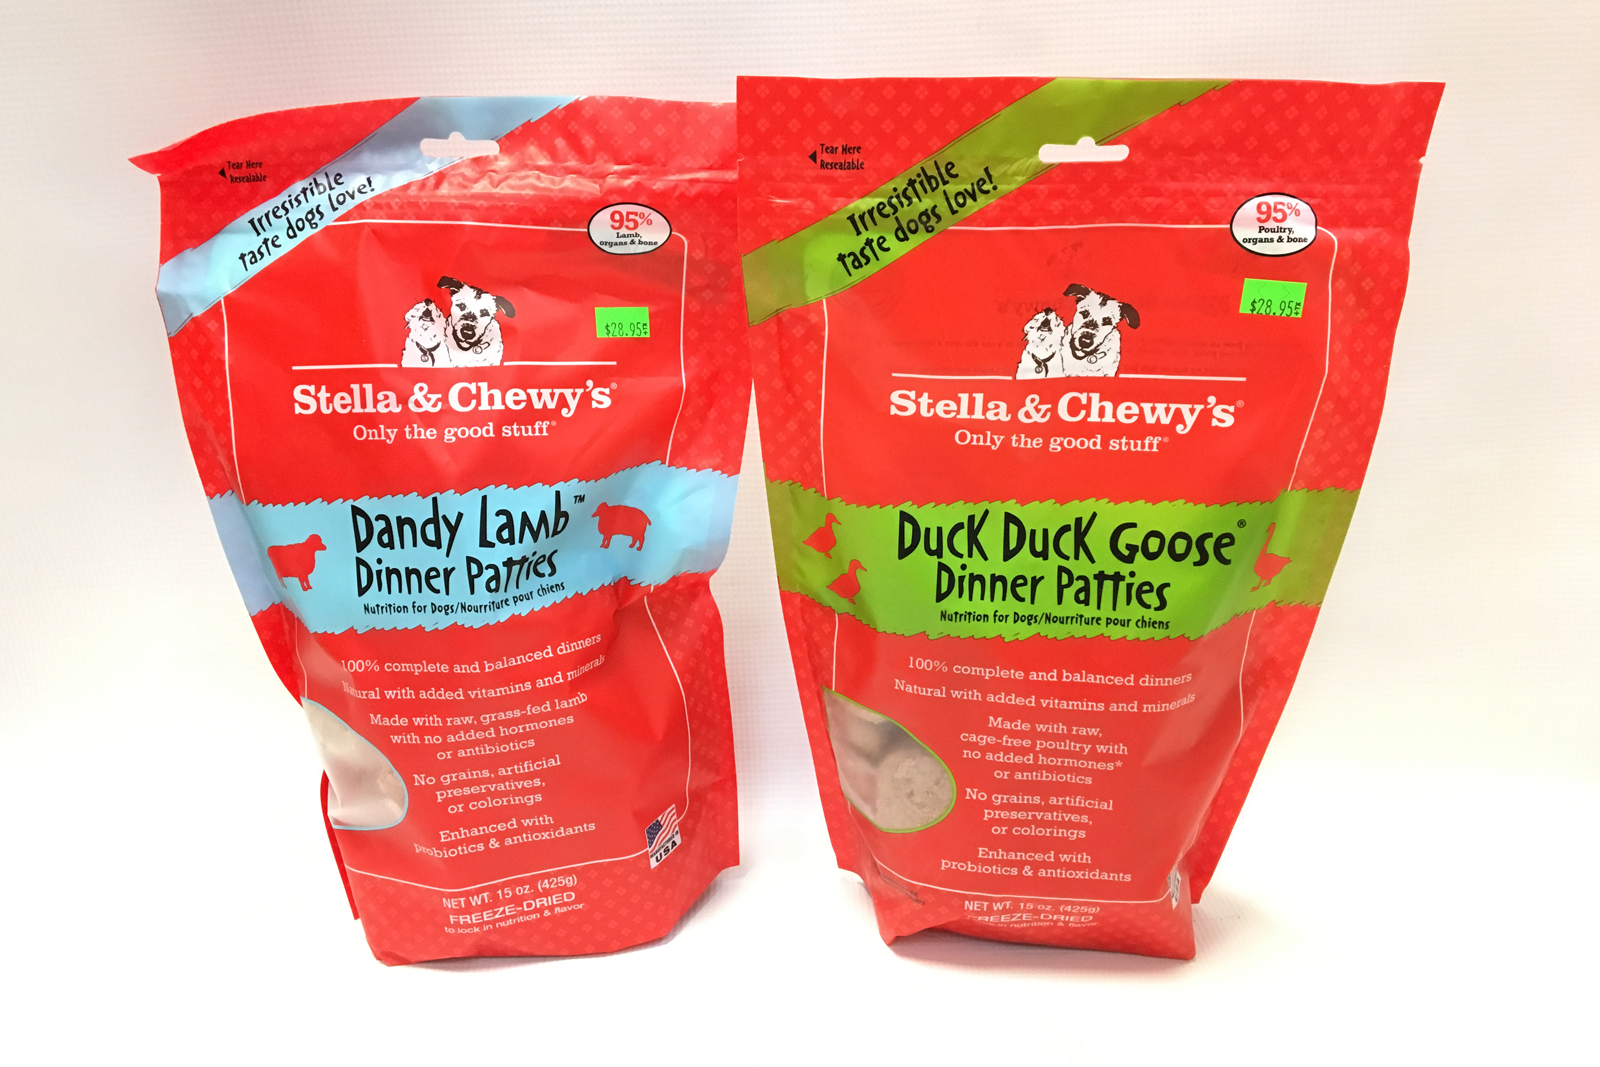 Spartanburg, South Carolina, Greenville, Dog, Pets, Dog Food, Pet Supplies, Pet Food, Stella & Chewys, 4 Paws